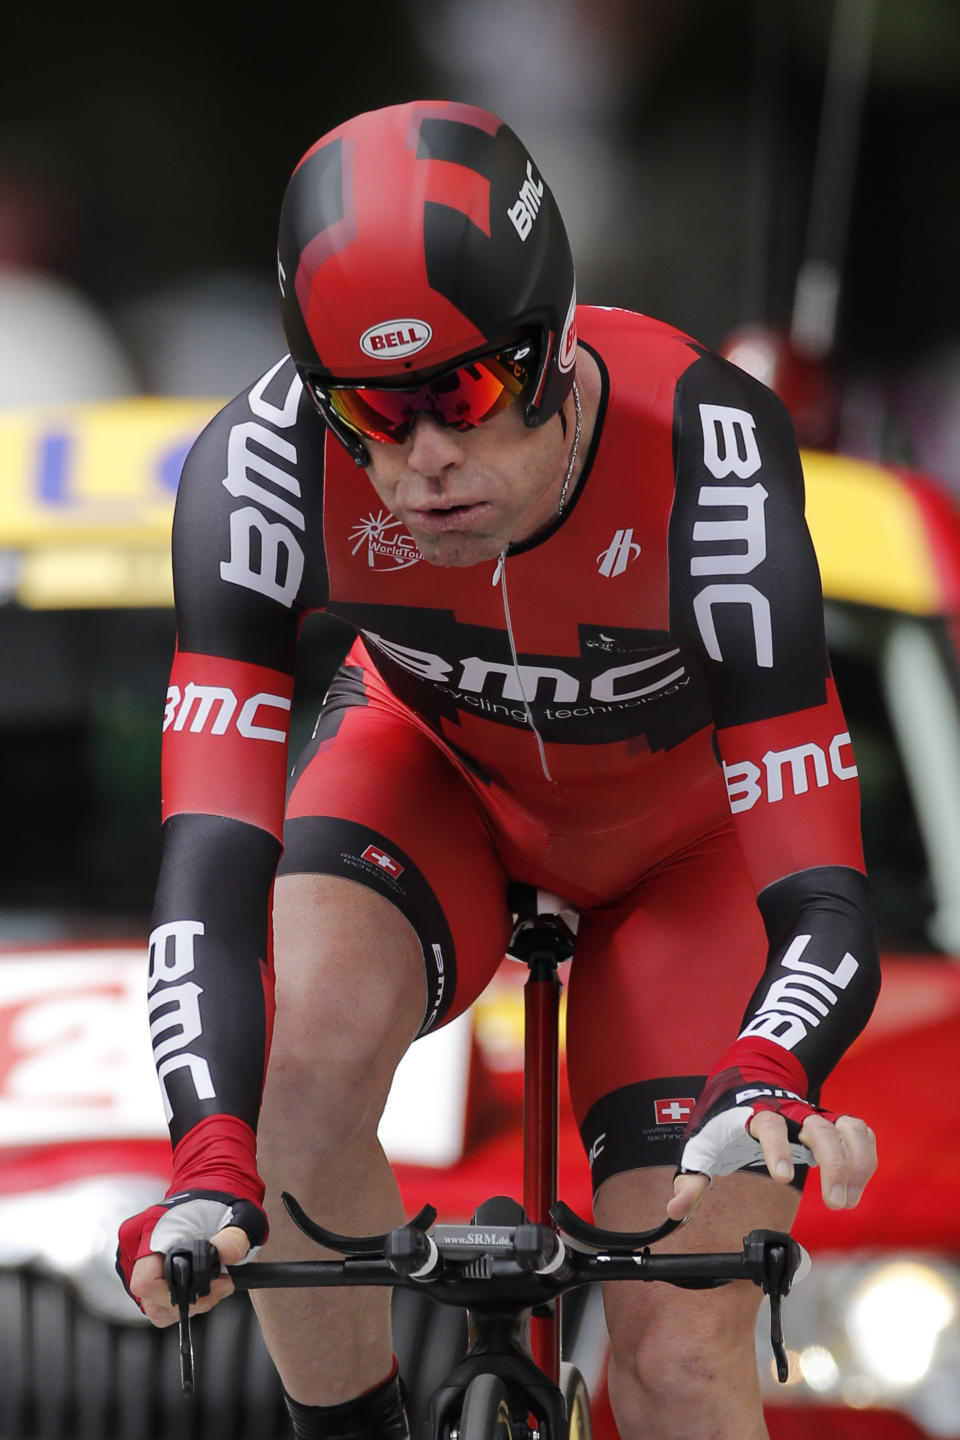 Cadel Evans of Australia blows out air as he crosses the finish line of the prologue of the Tour de France cycling race, an individual time trial over 6,4 kilometers (4 miles) with start and finish in Liege, Belgium, Saturday June 30 2012. (AP Photo/Laurent Rebours)